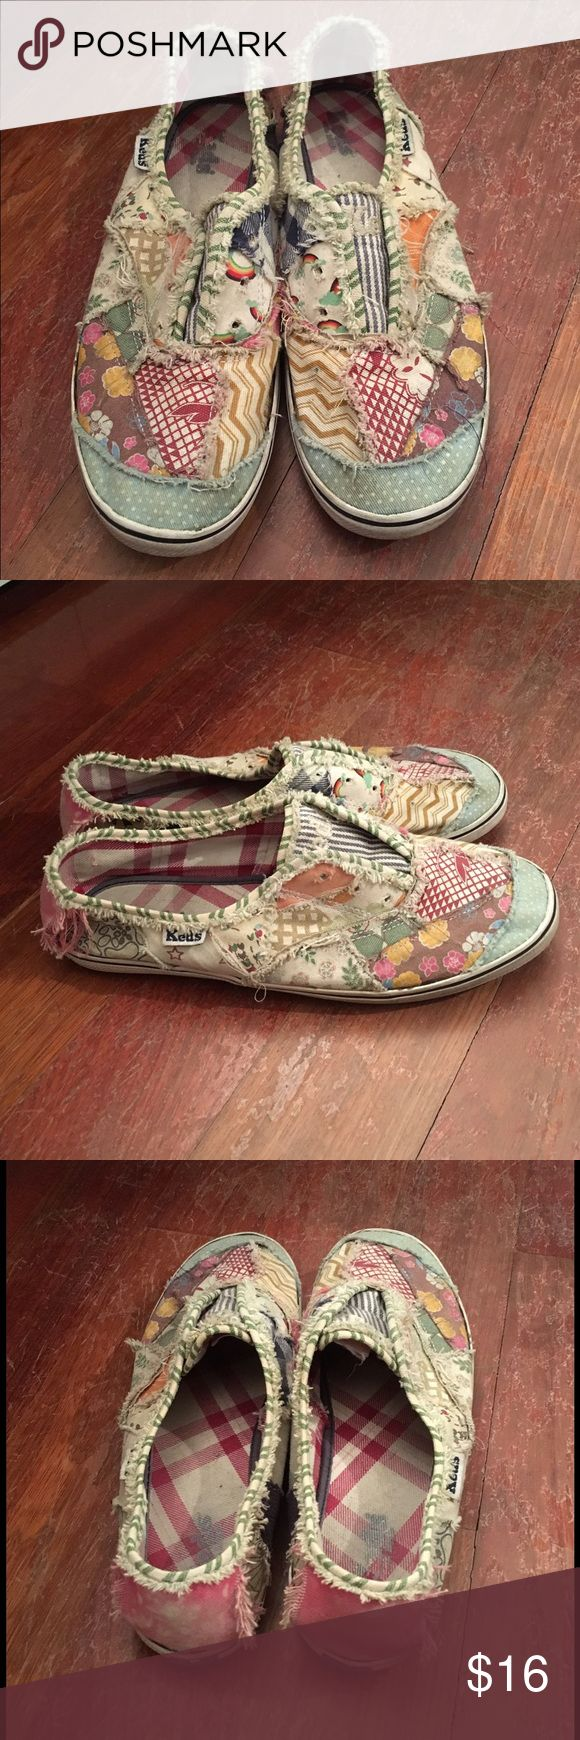 Keds Sneakers Keds patch patterned sneakers. Worn but still cute and comfy! Keds Shoes Sneakers